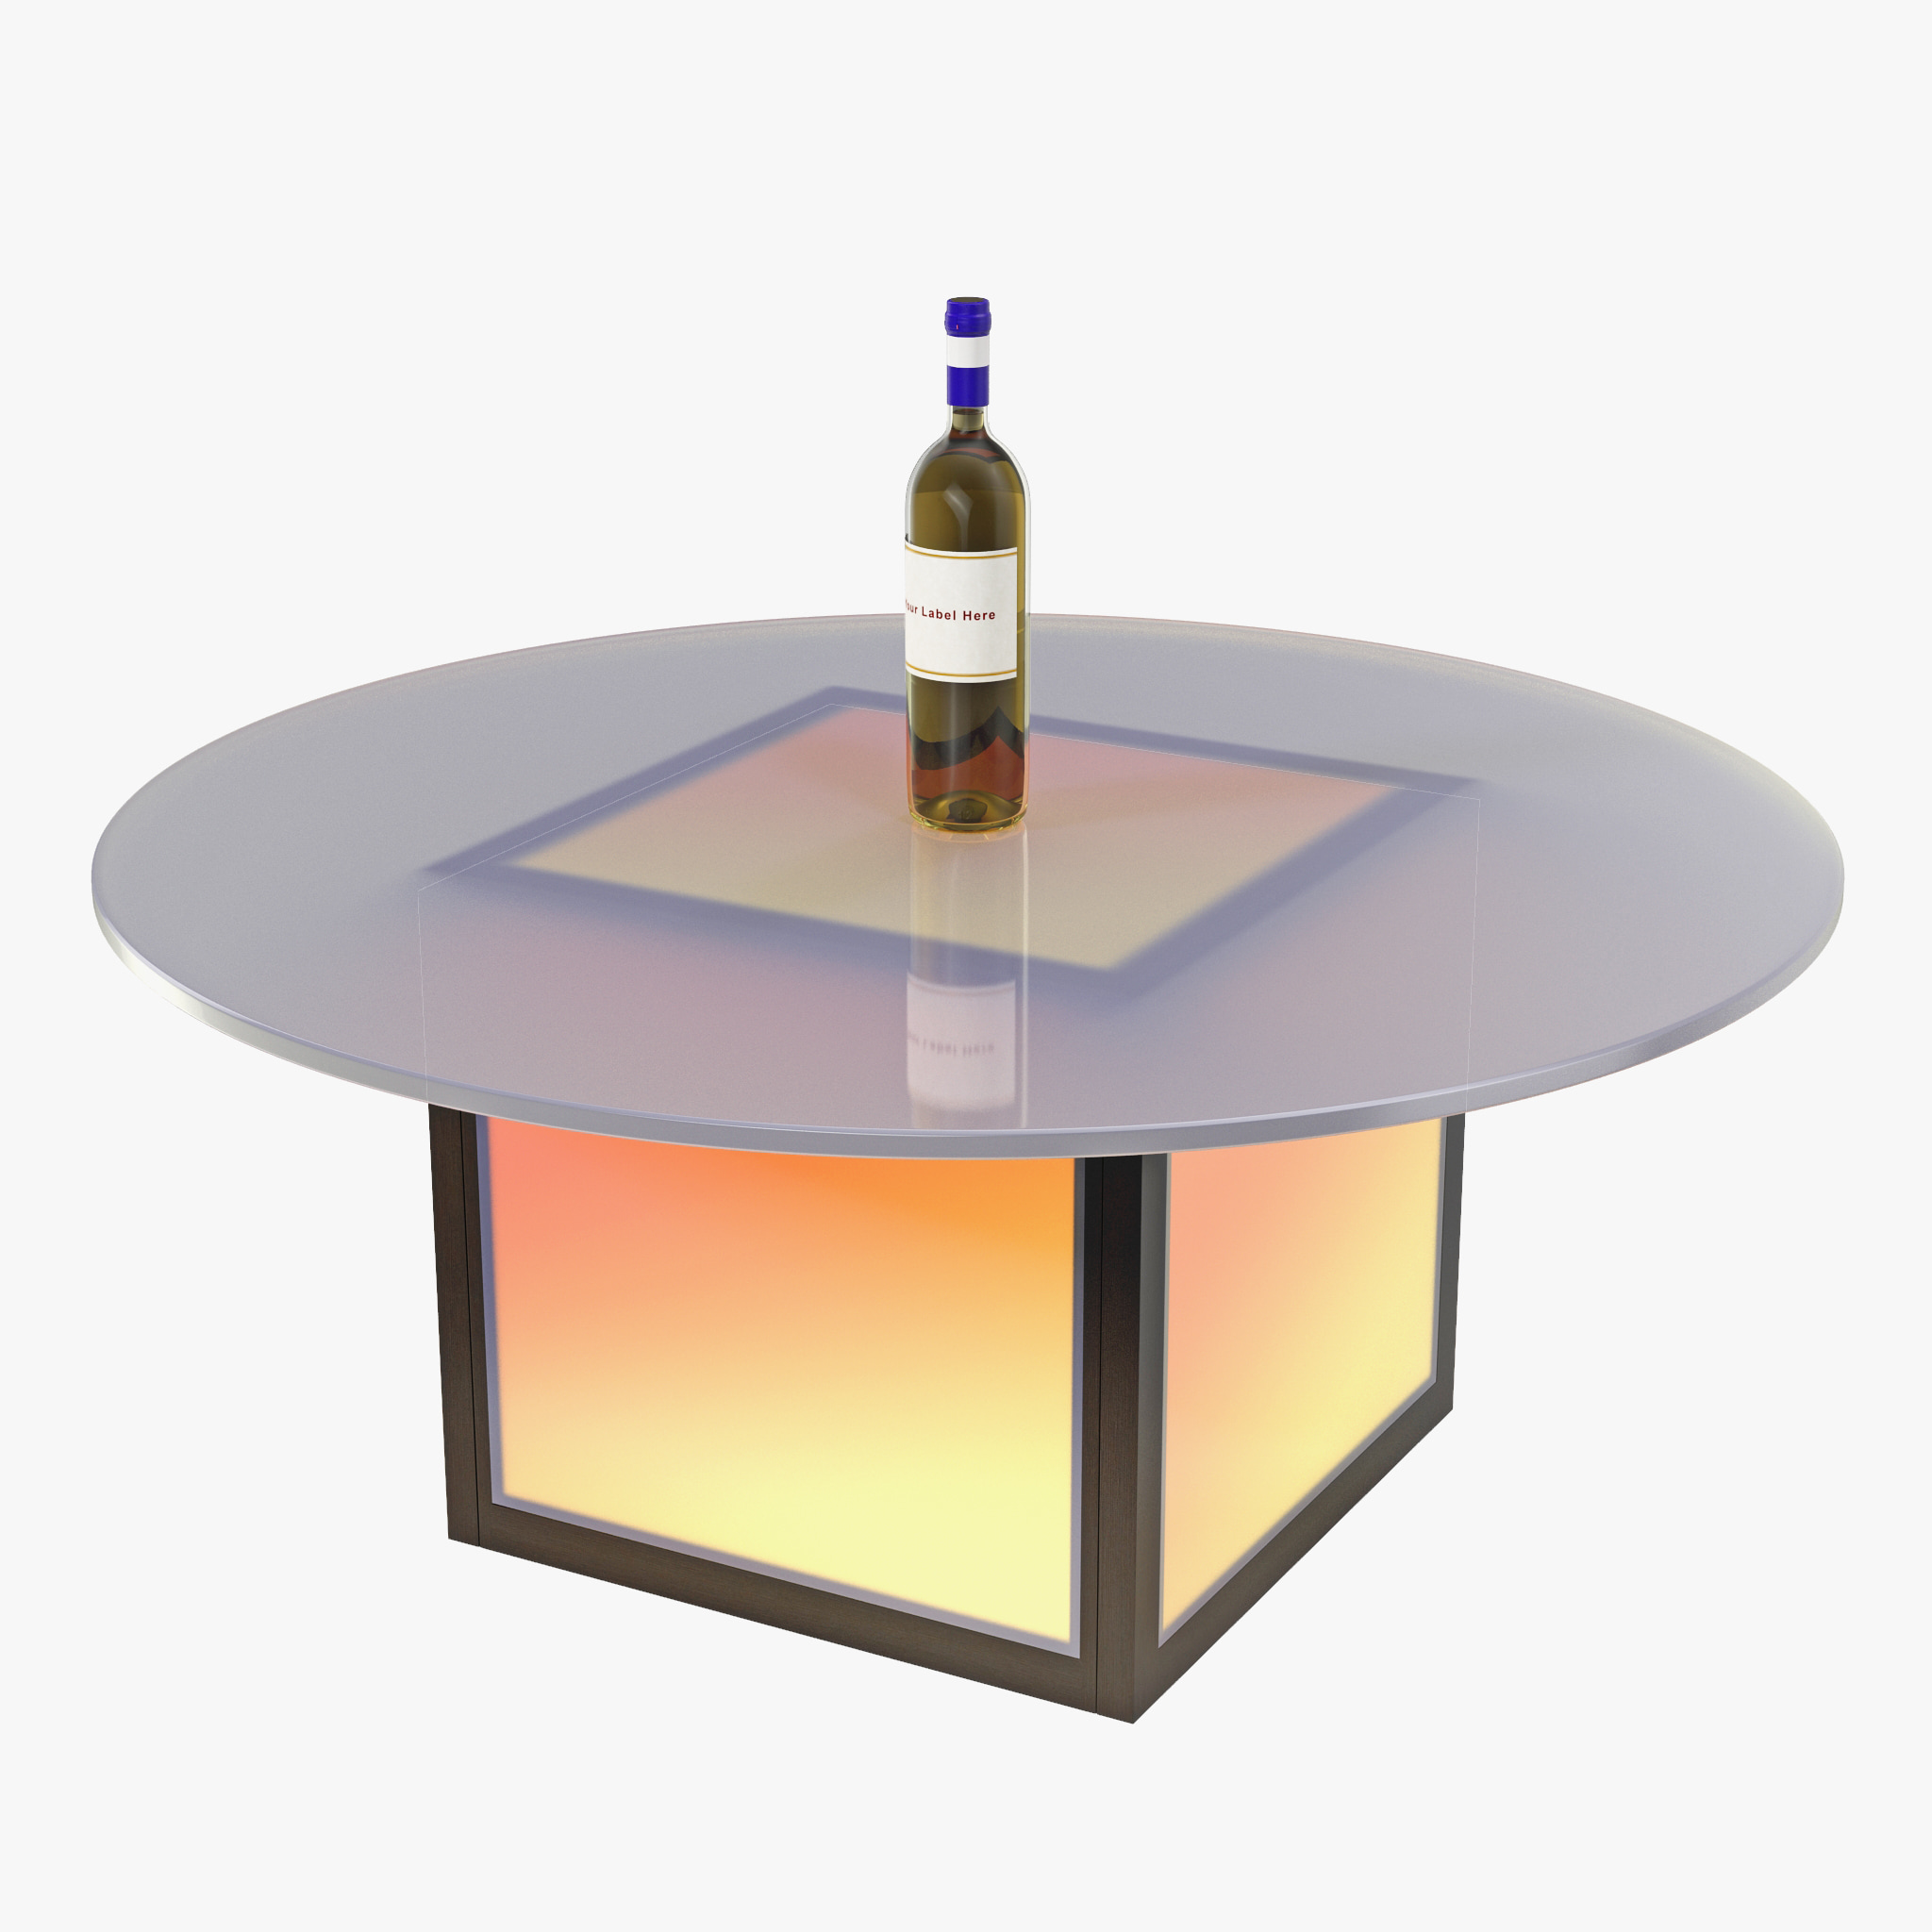 3ds Max Led Illuminated Coffee Table